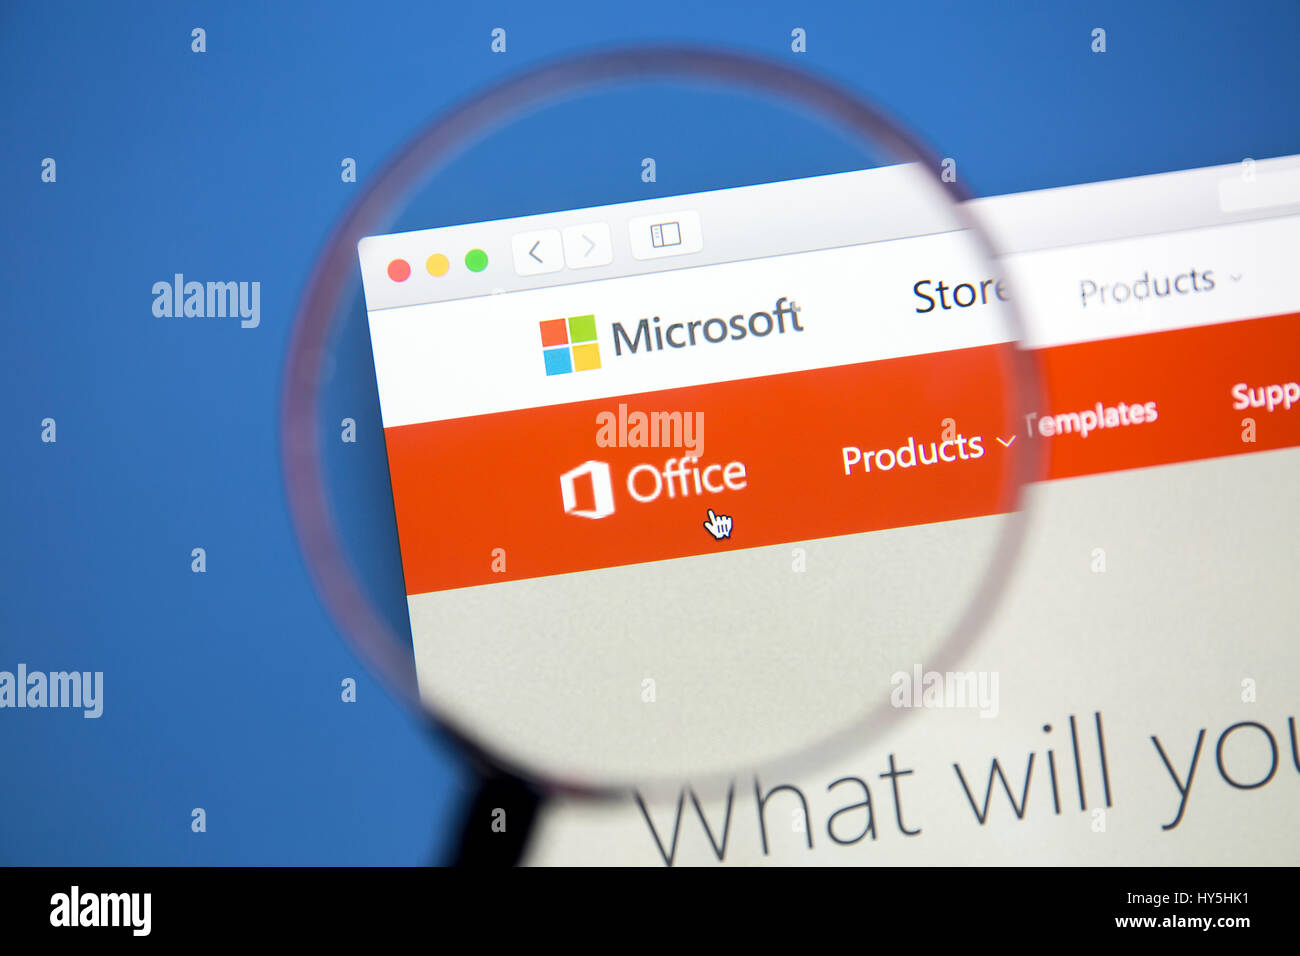 Site web de l'Office sur l'écran d'un ordinateur. Microsoft Office est une suite bureautique d'applications Photo Stock